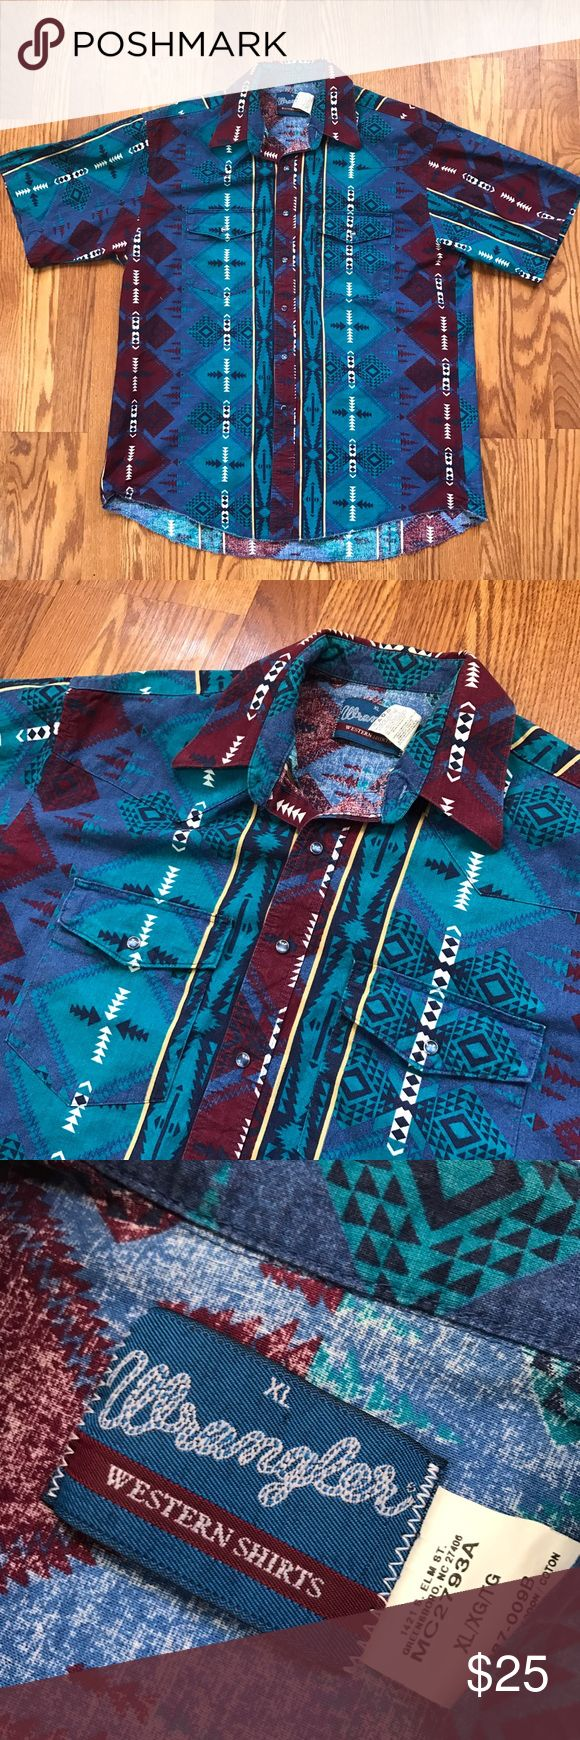 Vtg Wrangler Southwestern shirt Vintage wrangler Western shirt with Southwestern artwork. Very cool print. Snap up front. Very clean and crispy. Has slight distressing on the bottom hem.  Condition 9/10 Color: Southwestern art Size: XL I ship out fast! Measurements upon request. Wrangler Shirts Casual Button Down Shirts